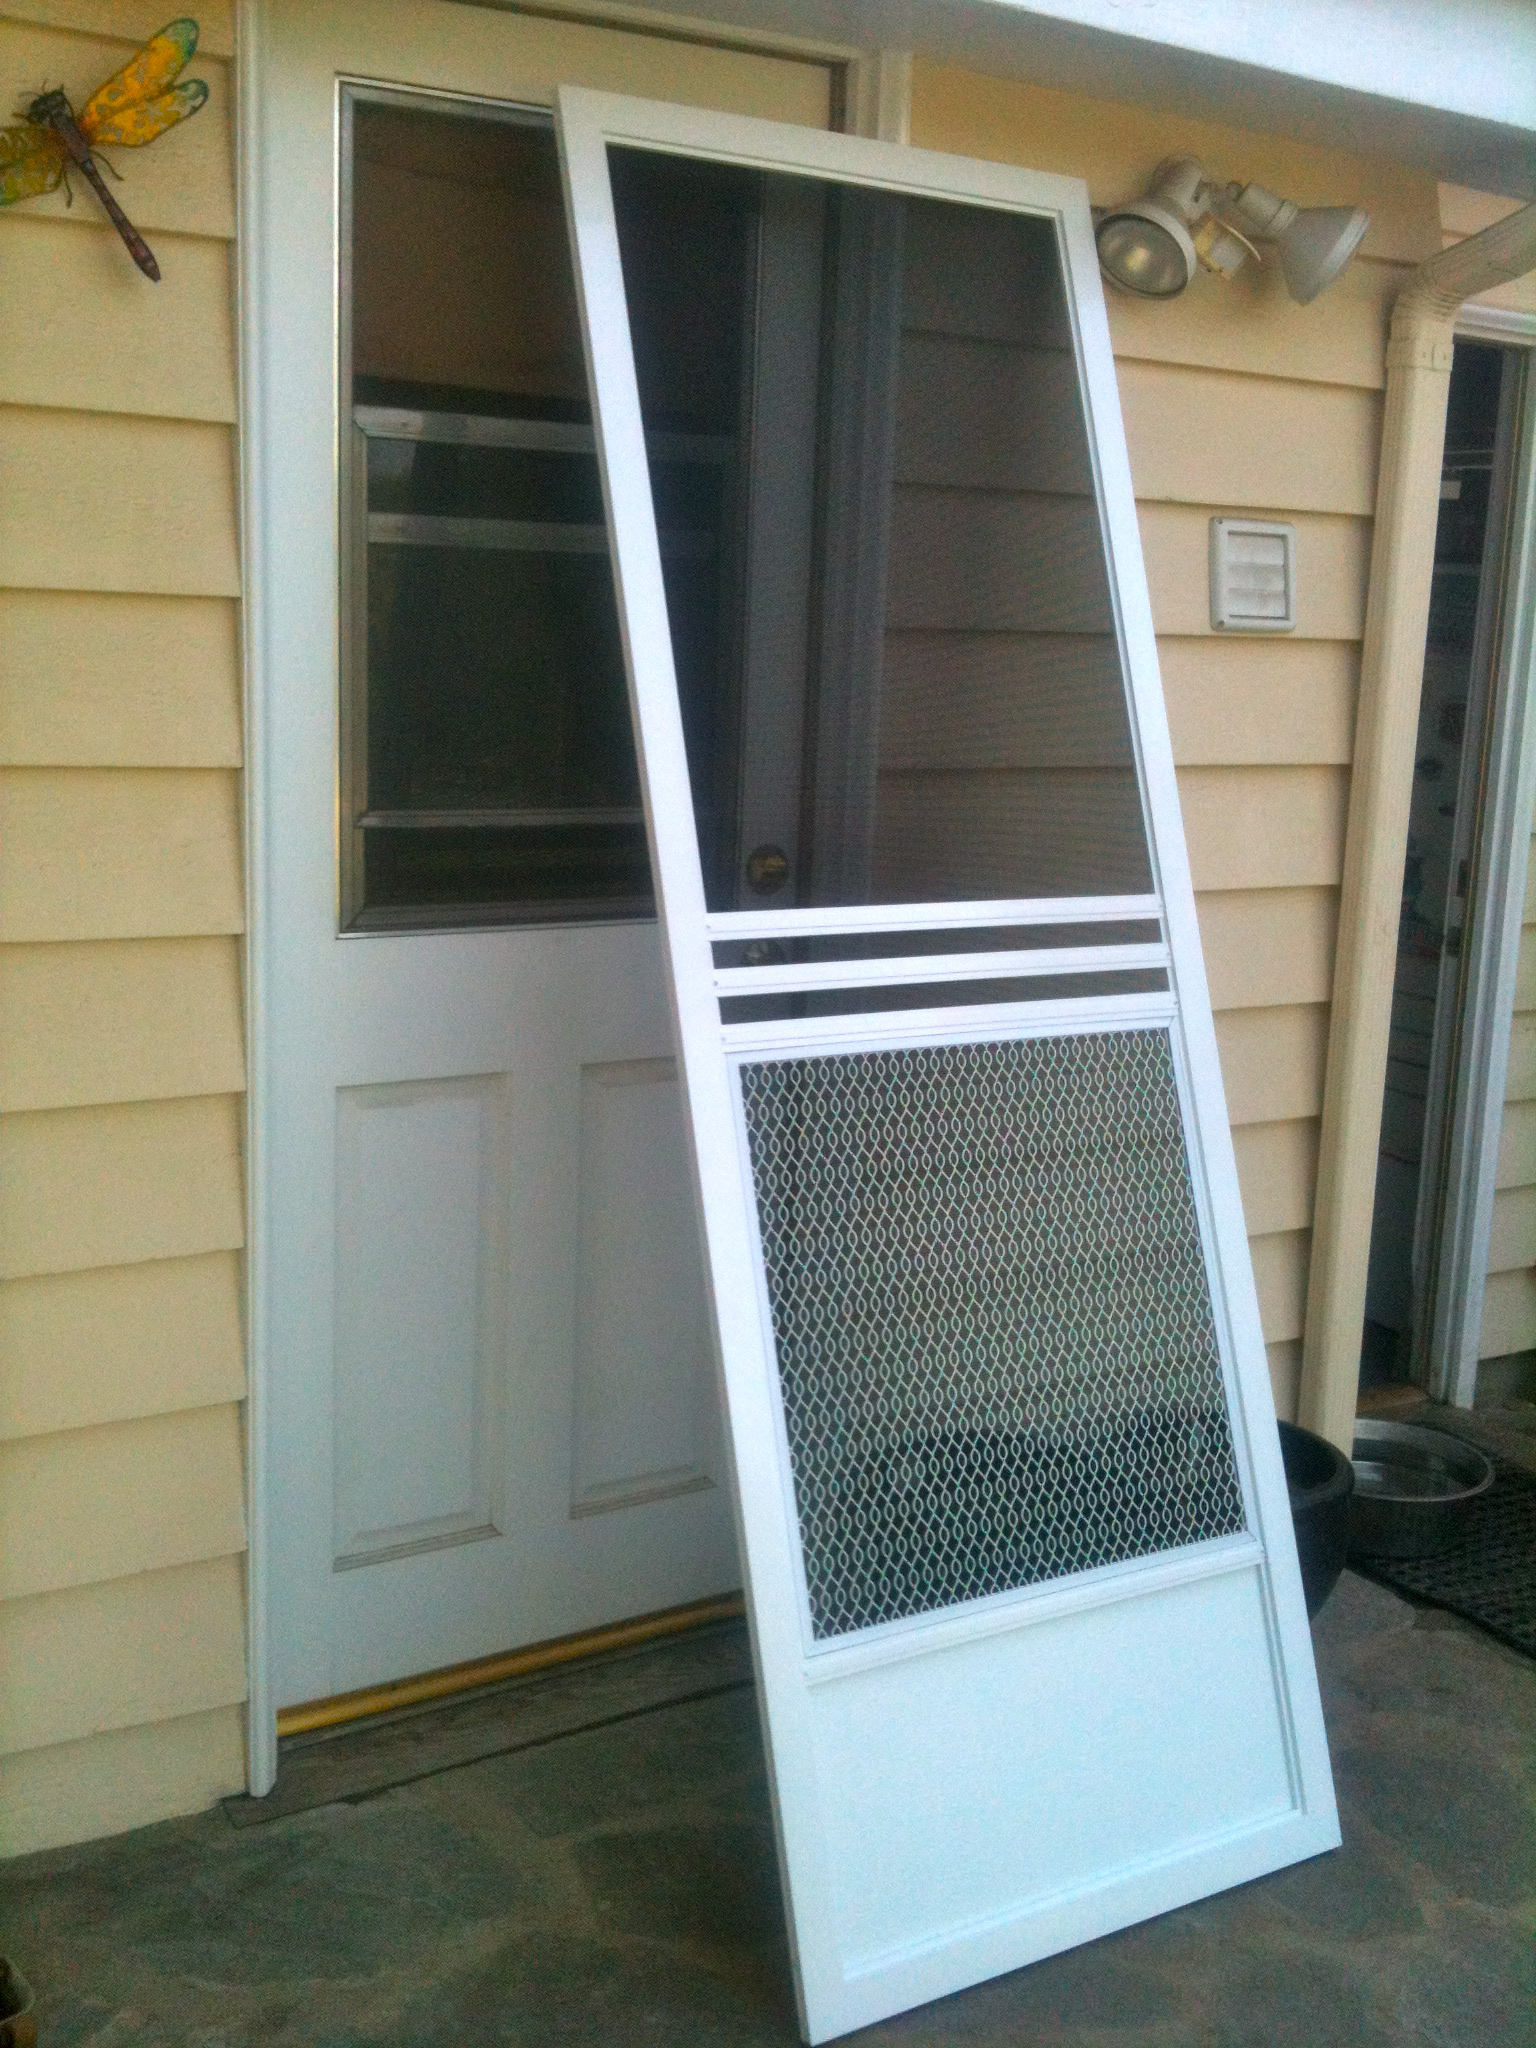 Screen Doors Window Screen Repair Mobile Screen Service Econo